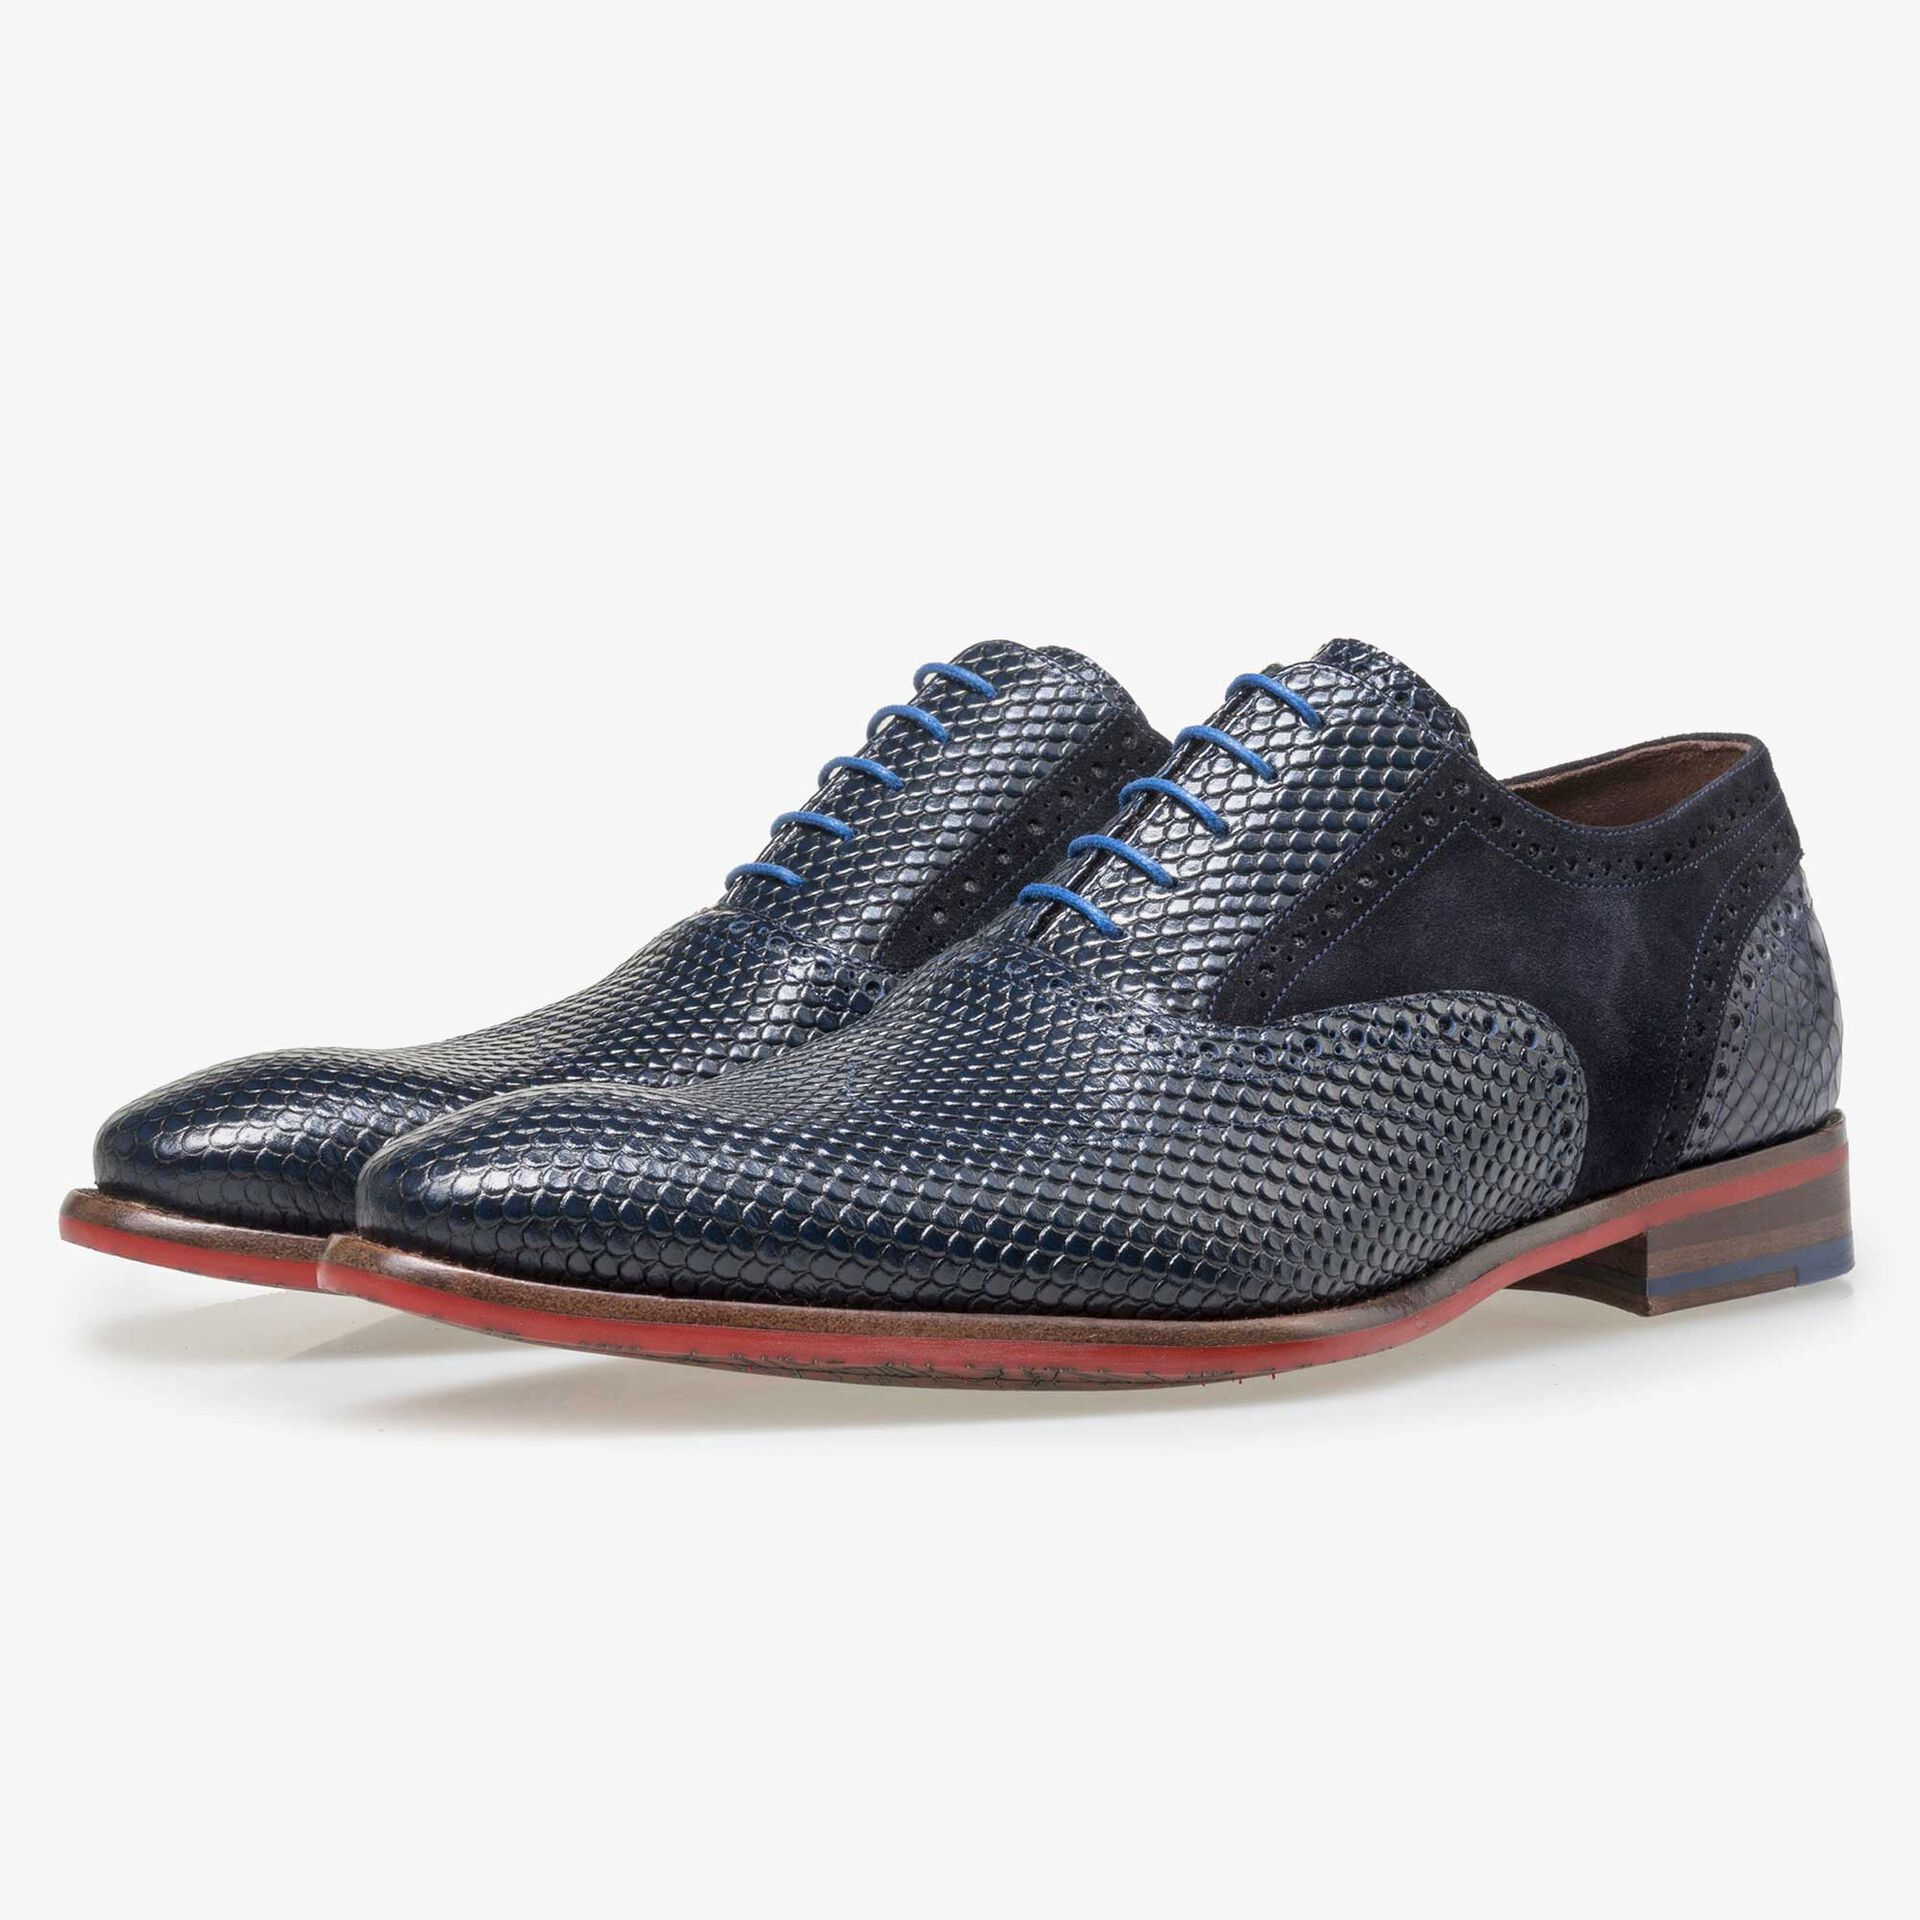 Floris van Bommel men's dark blue leather lace shoe